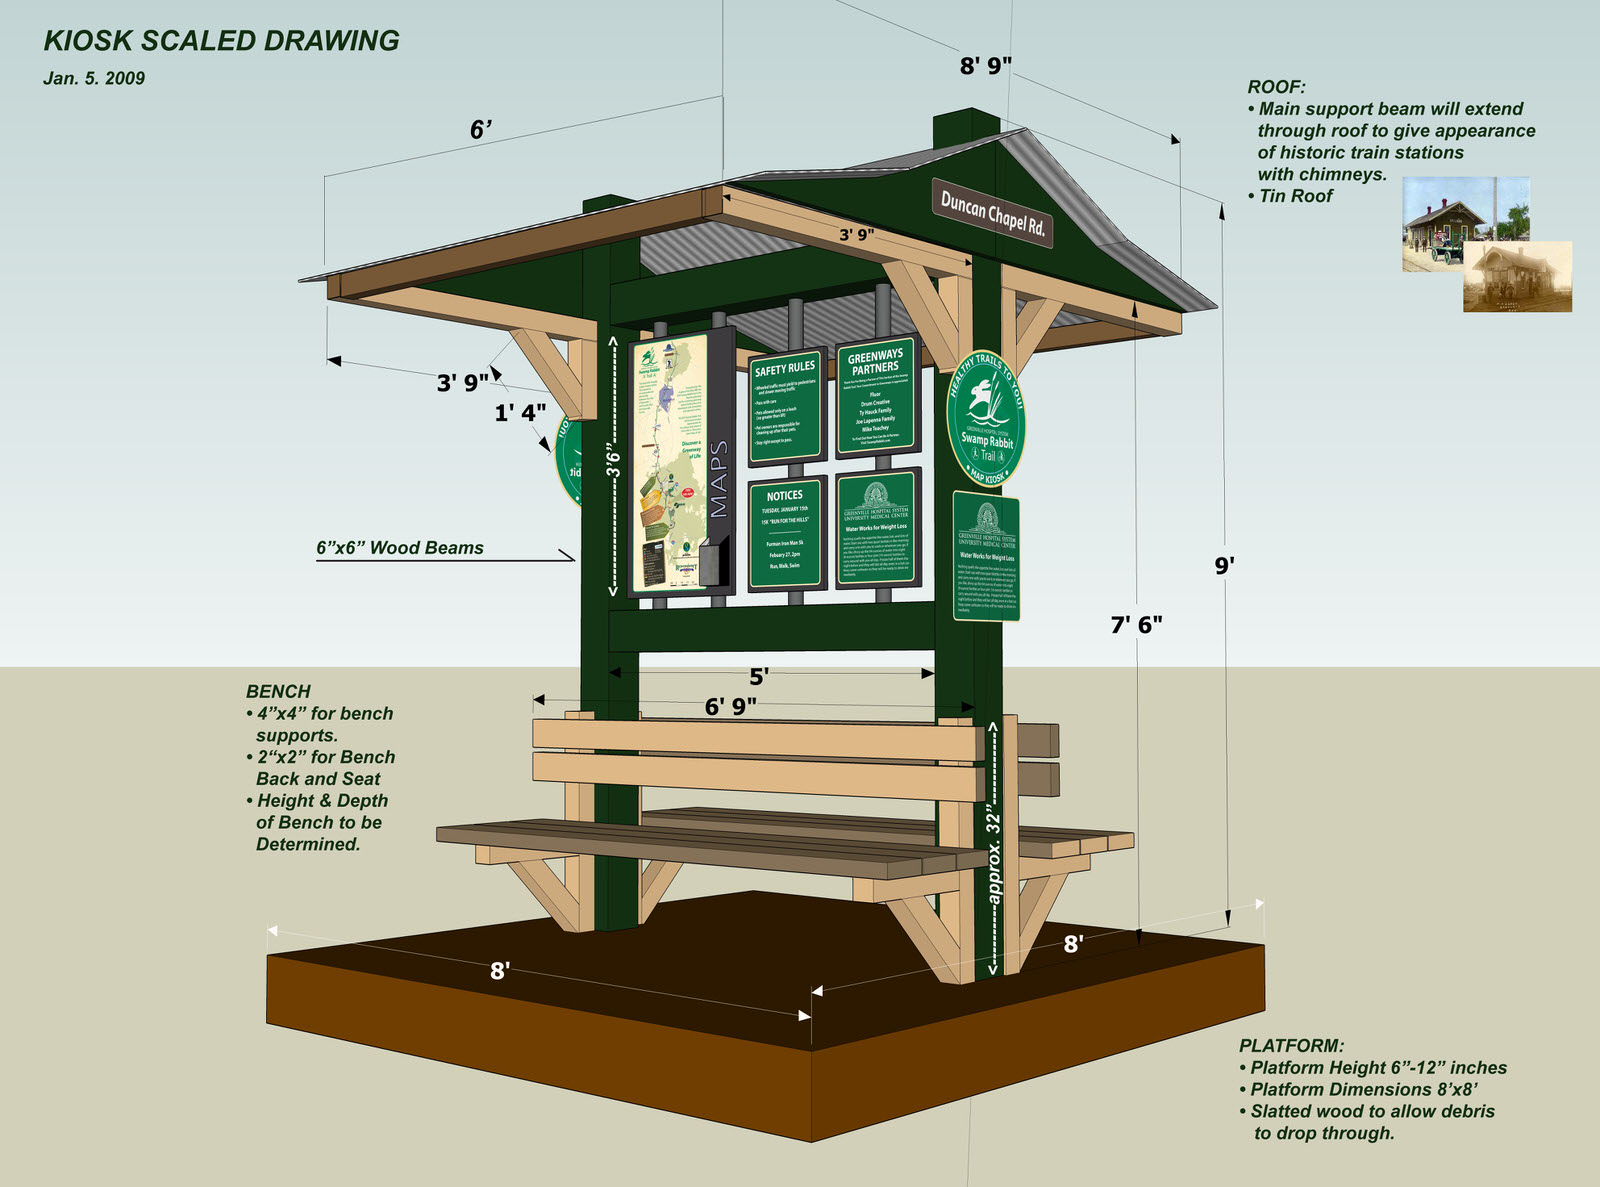 Park Kiosk Plans http://greenvillerec.com/studies-surveys